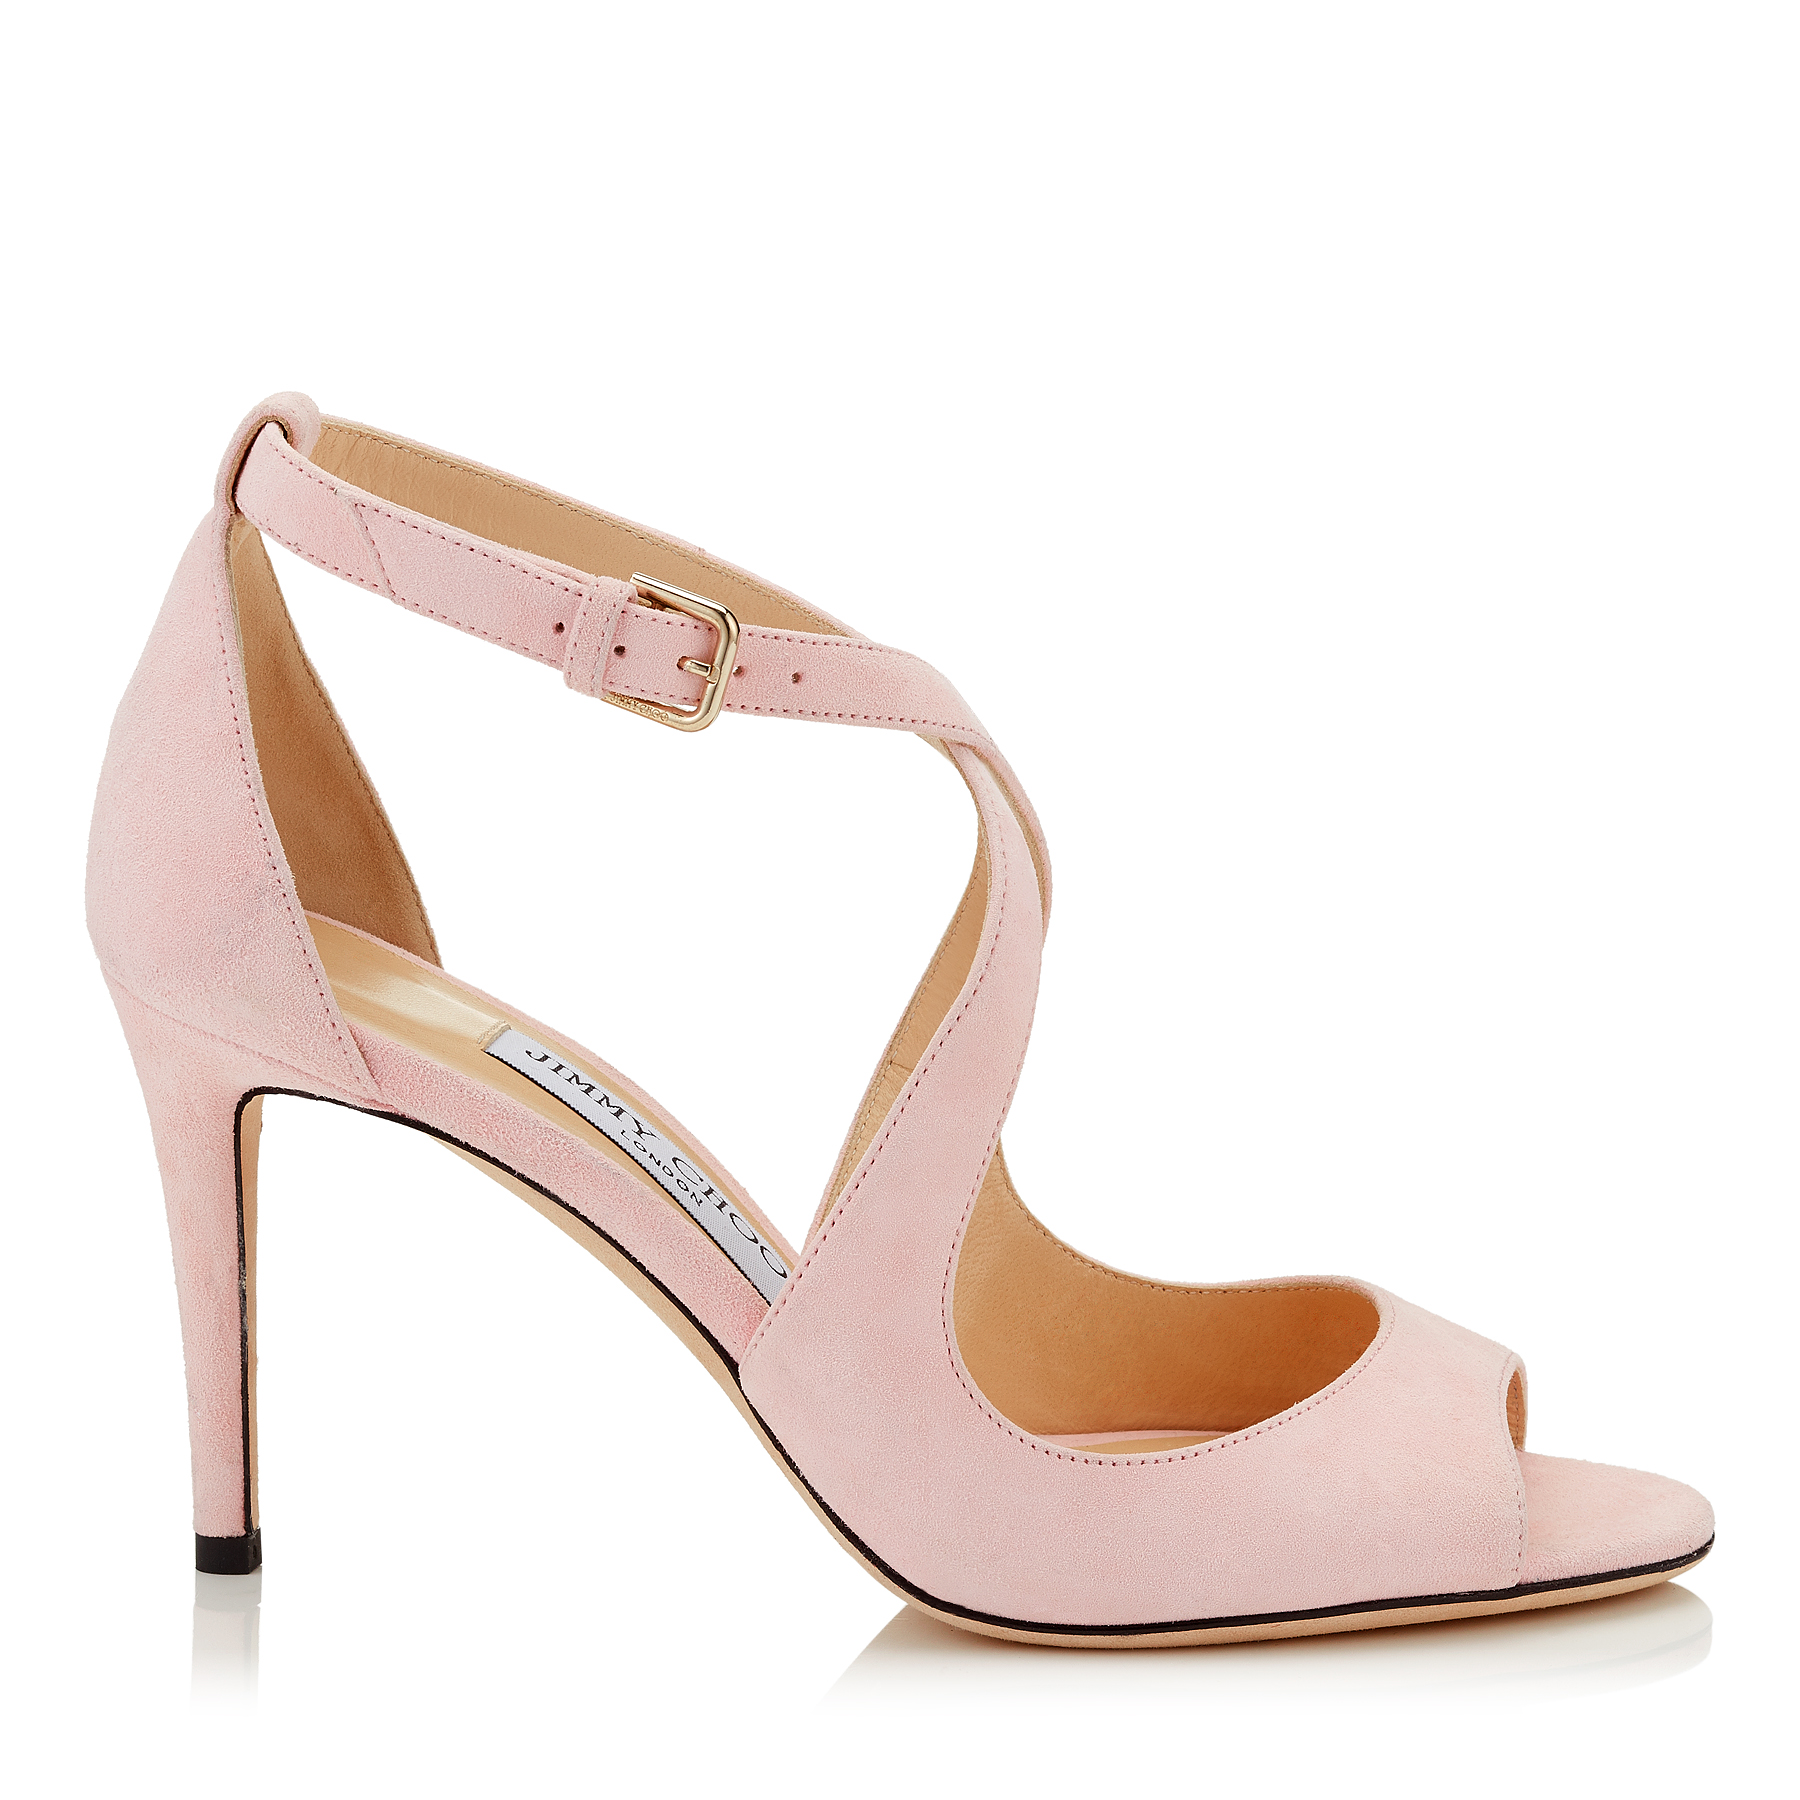 EMILY 85 Rosewater Suede Sandals by Jimmy Choo